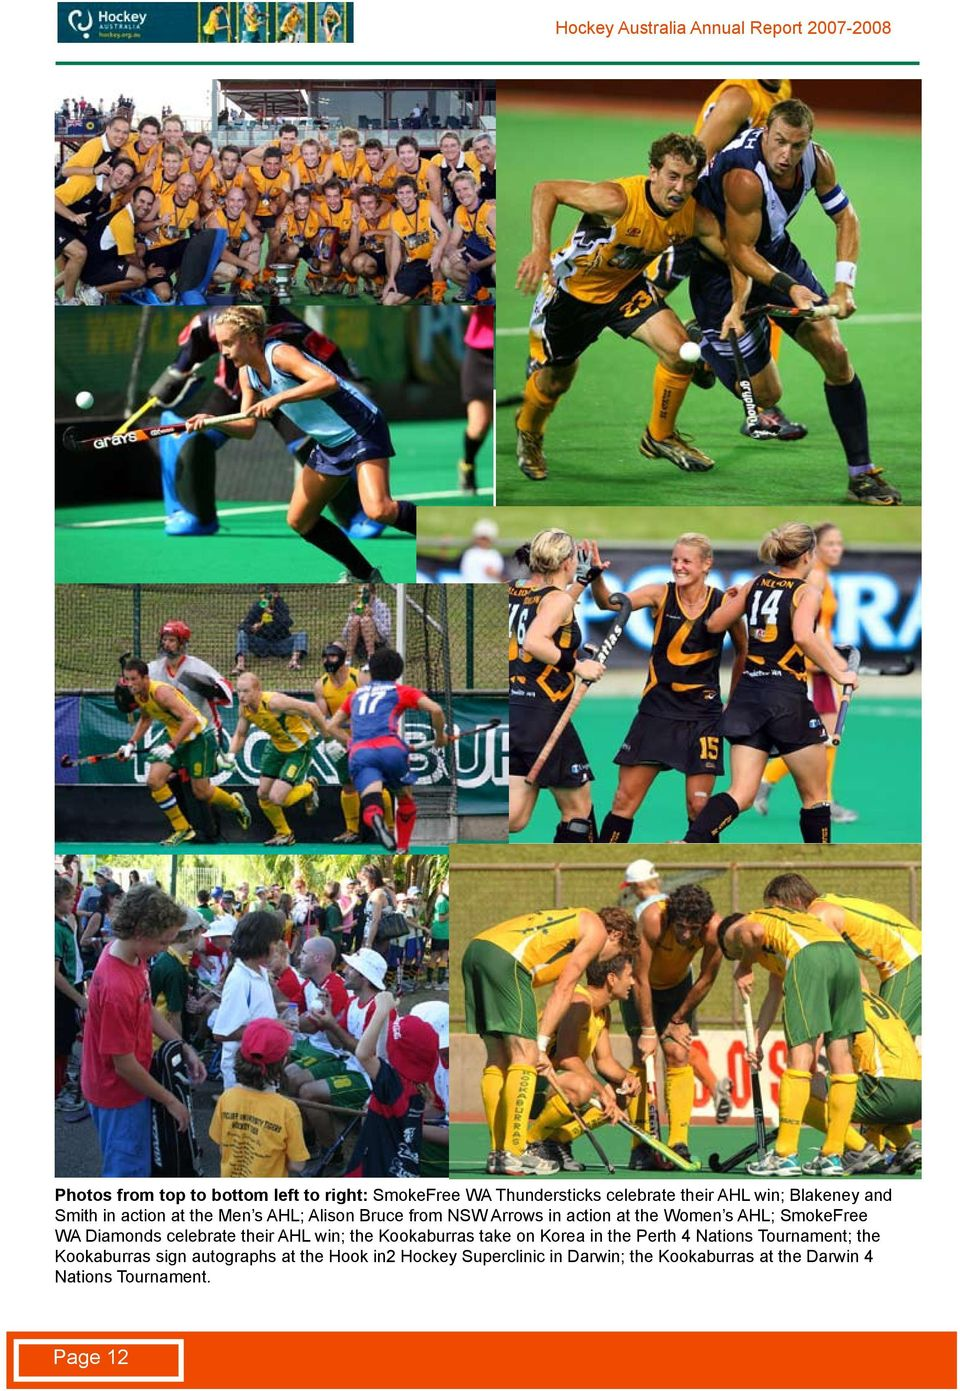 celebrate their AHL win; the Kookaburras take on Korea in the Perth 4 Nations Tournament; the Kookaburras sign